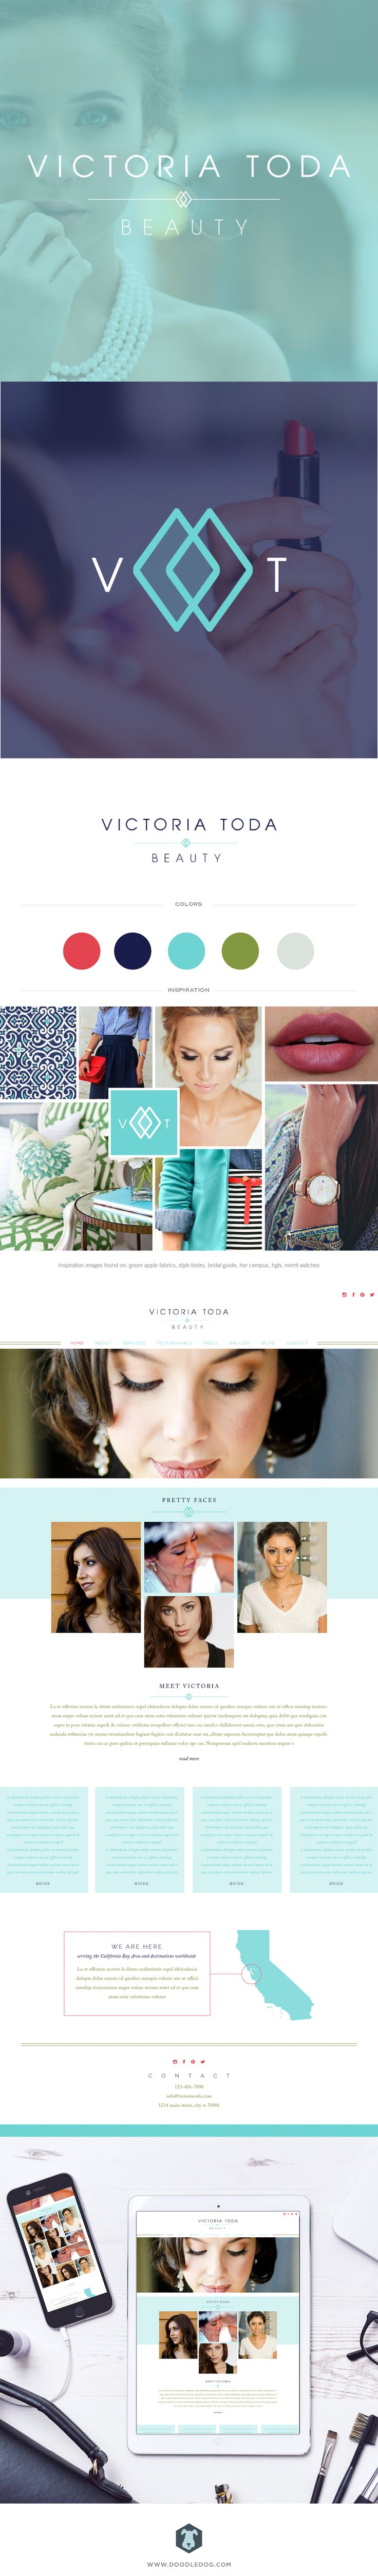 Branding, logo, and website design for California makeup artist, Victoria Toda by Doodle Dog. See the full design and more at www.doodledog.com